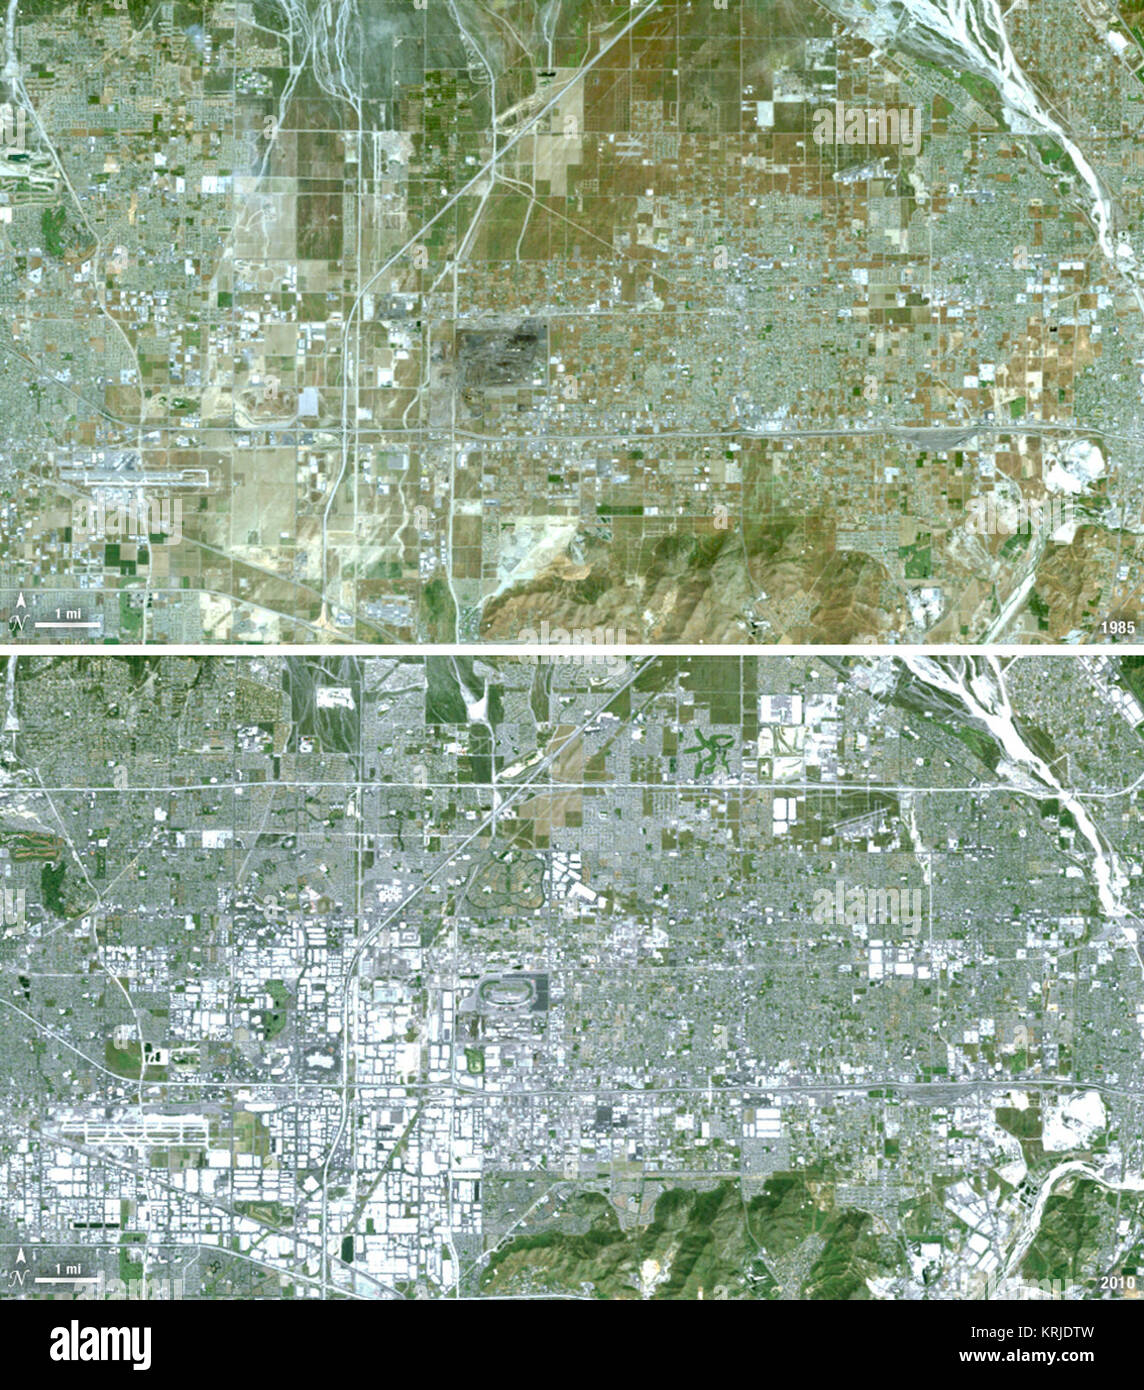 Thirty Five Miles Due East Of Downtown Los Angeles Lies The City